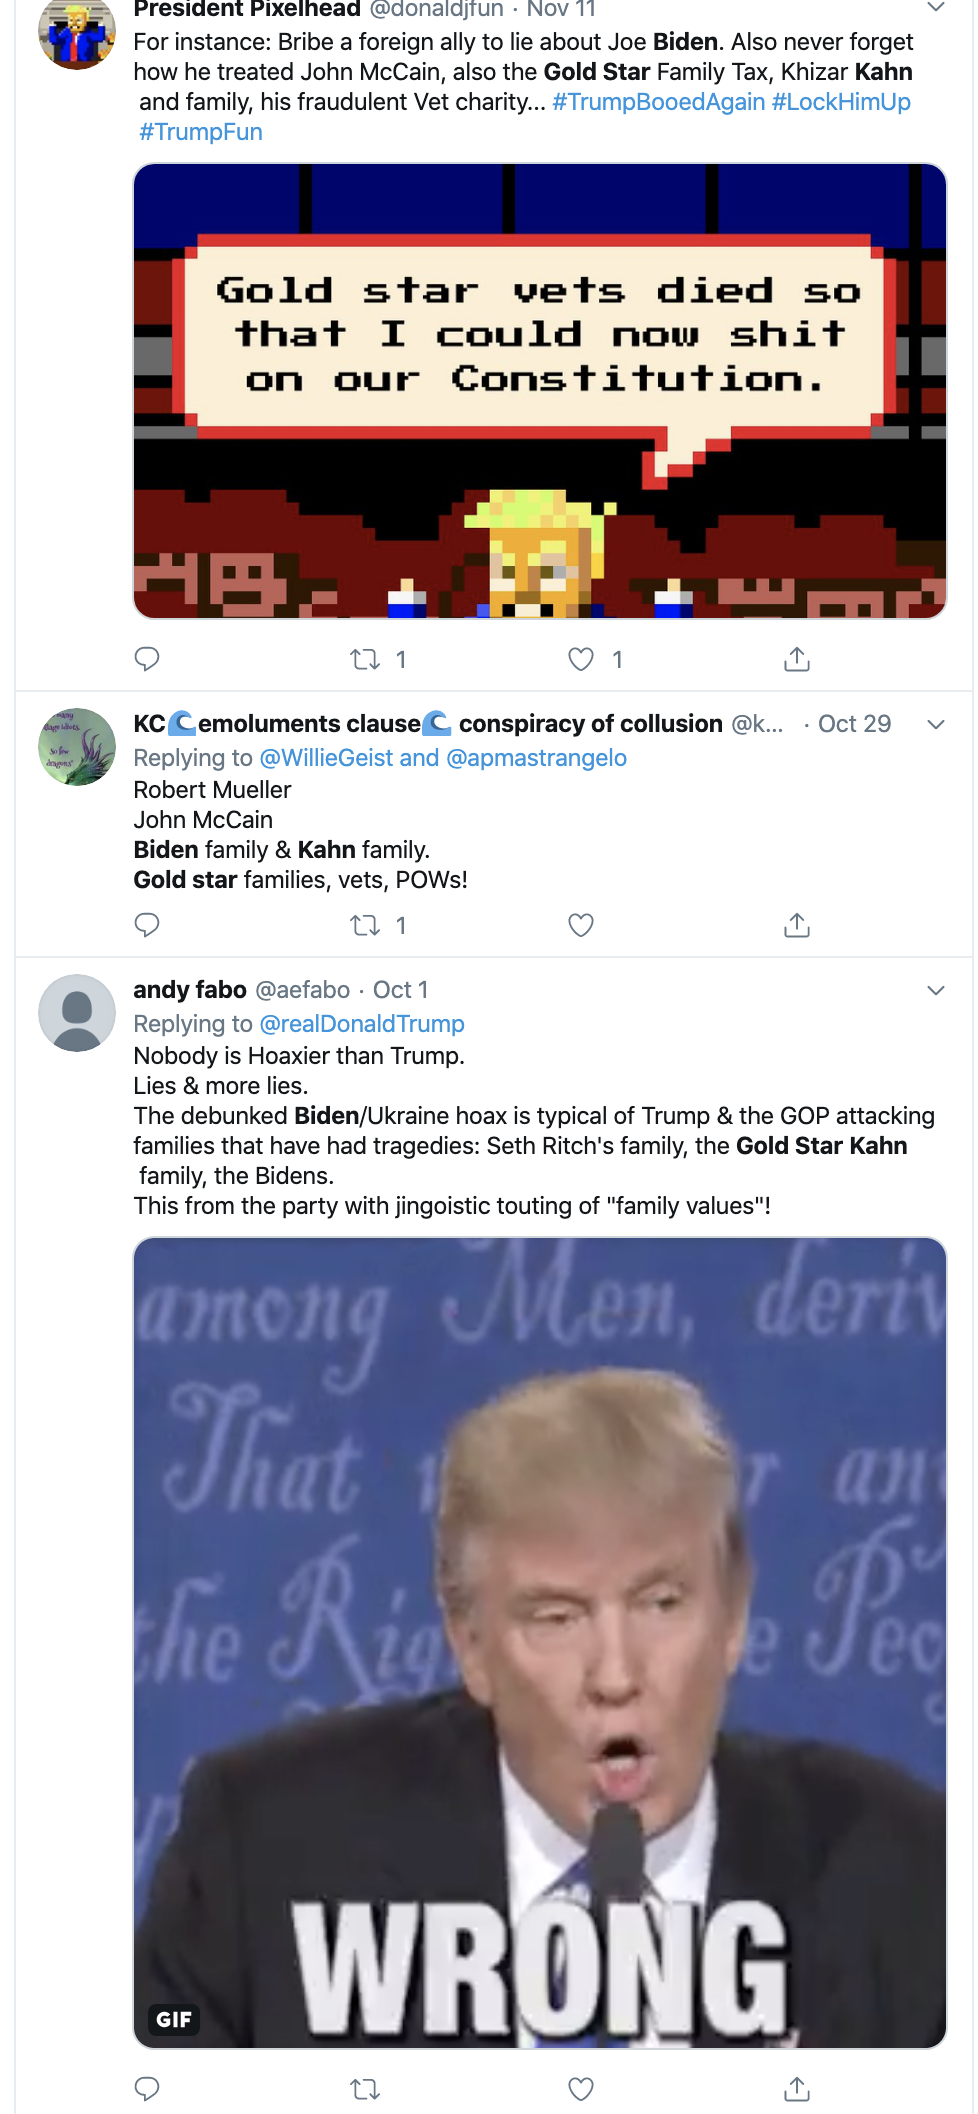 Screen-Shot-2019-11-18-at-2.18.16-PM Fallen Soldier's Family Disrespected By Trump Names 2020 Endorsement Activism Corruption Crime Domestic Policy Donald Trump Election 2016 Election 2020 Featured Foreign Policy Impeachment Investigation Islamaphobia Military National Security Politics Protest Racism Top Stories Veterans War